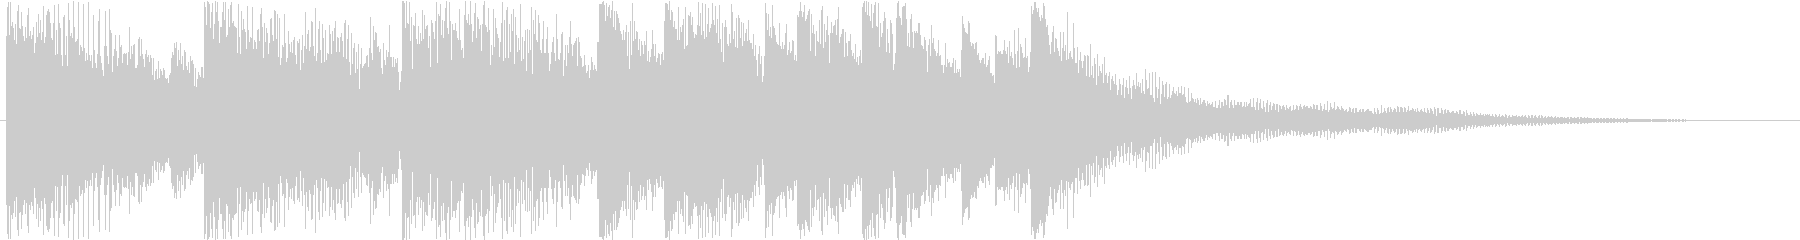 Sound logo, synth and impressive melody's unreproduced waveform